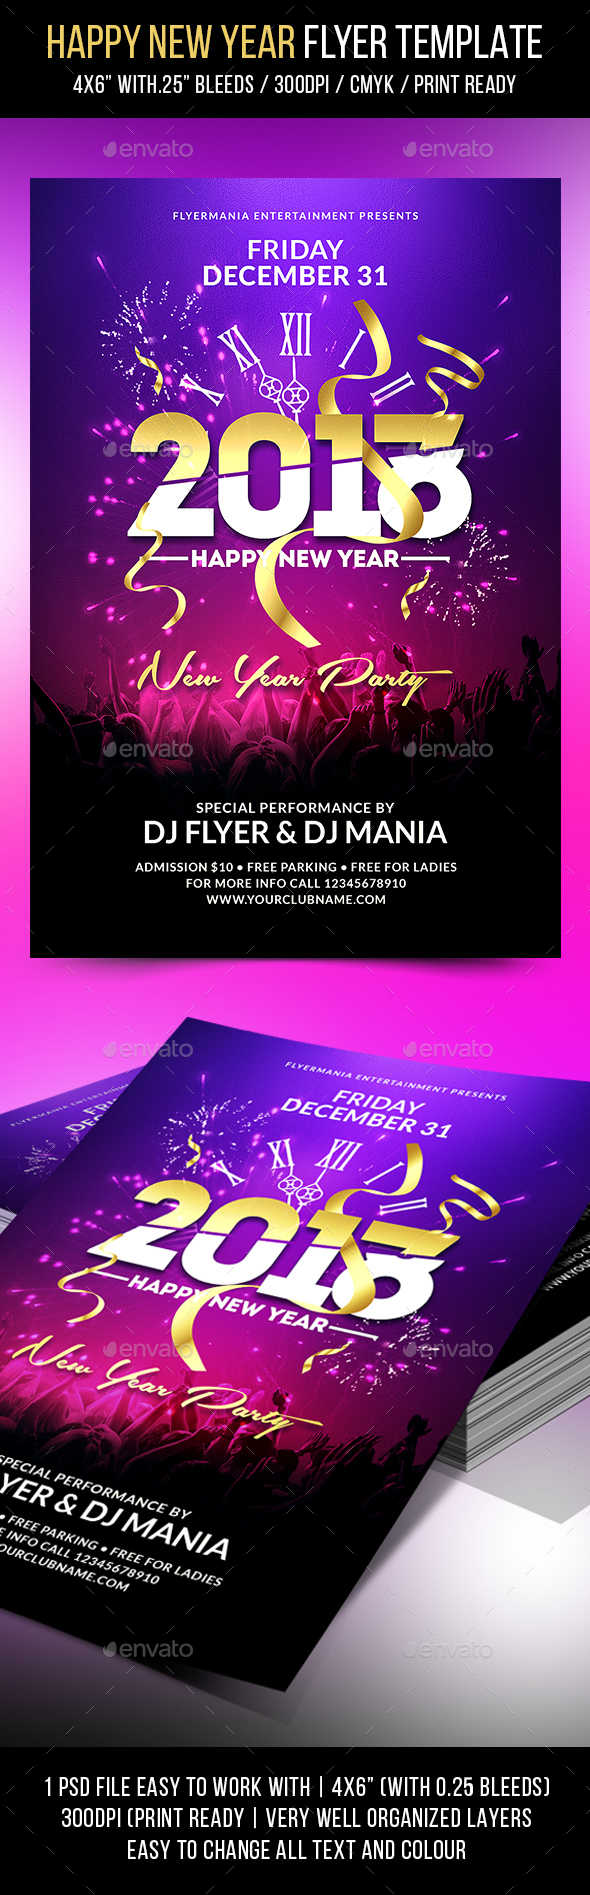 Happy New Year Flyer Template - Events Flyers